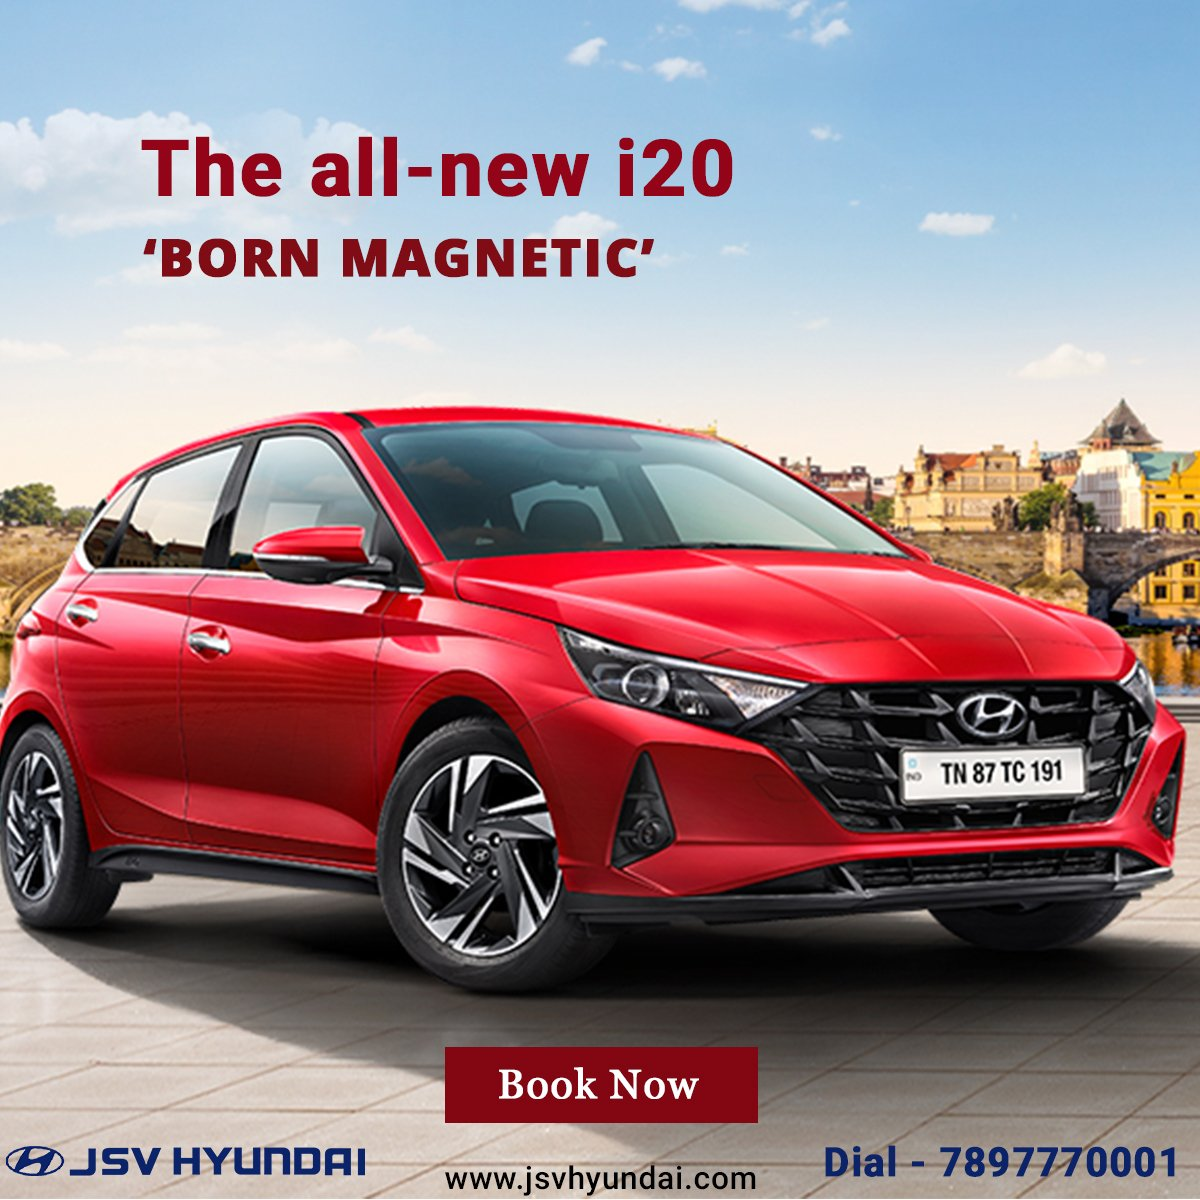 The all-new i20 - With its 'BORN MAGNETIC' attributes leaving an unforgettable impression #TheAllNewi20 #HappyNavratri #Lucknow #JSVHyundaiShowroom #Grandi10NIOS #NIOSLife #Elantra #HyundaiSantro #FamilyCar #Sporty #Xcent  #NewCreta2020 #Automobile #Venue #HyundaiVenue #booknow https://t.co/vHFILCRcZS